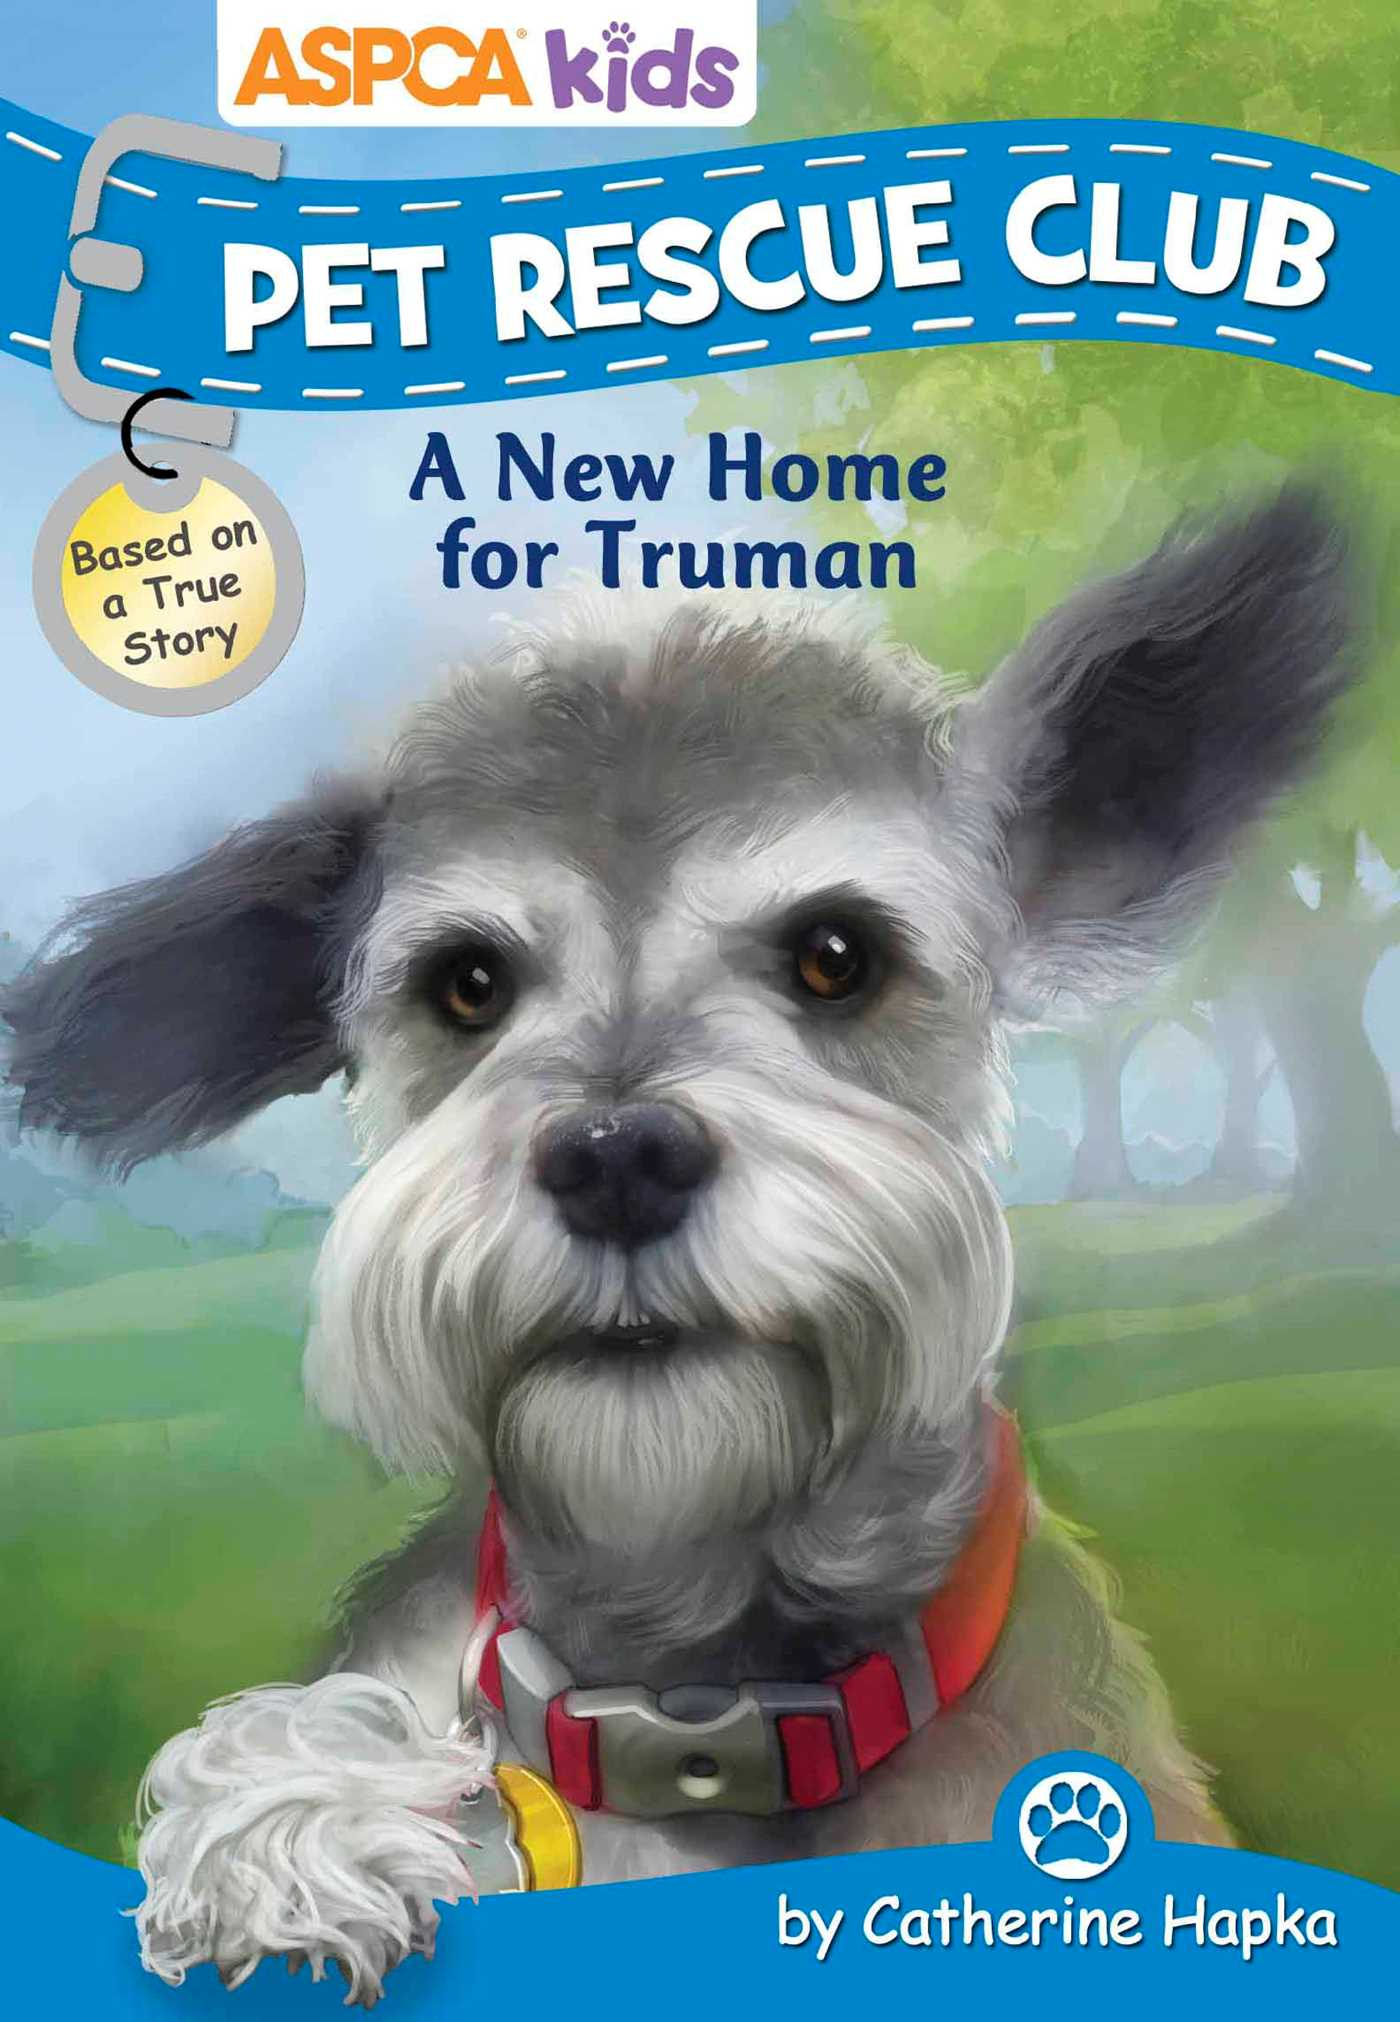 Aspca-kids-pet-rescue-club-a-new-home-for-truman-9780794433123_hr